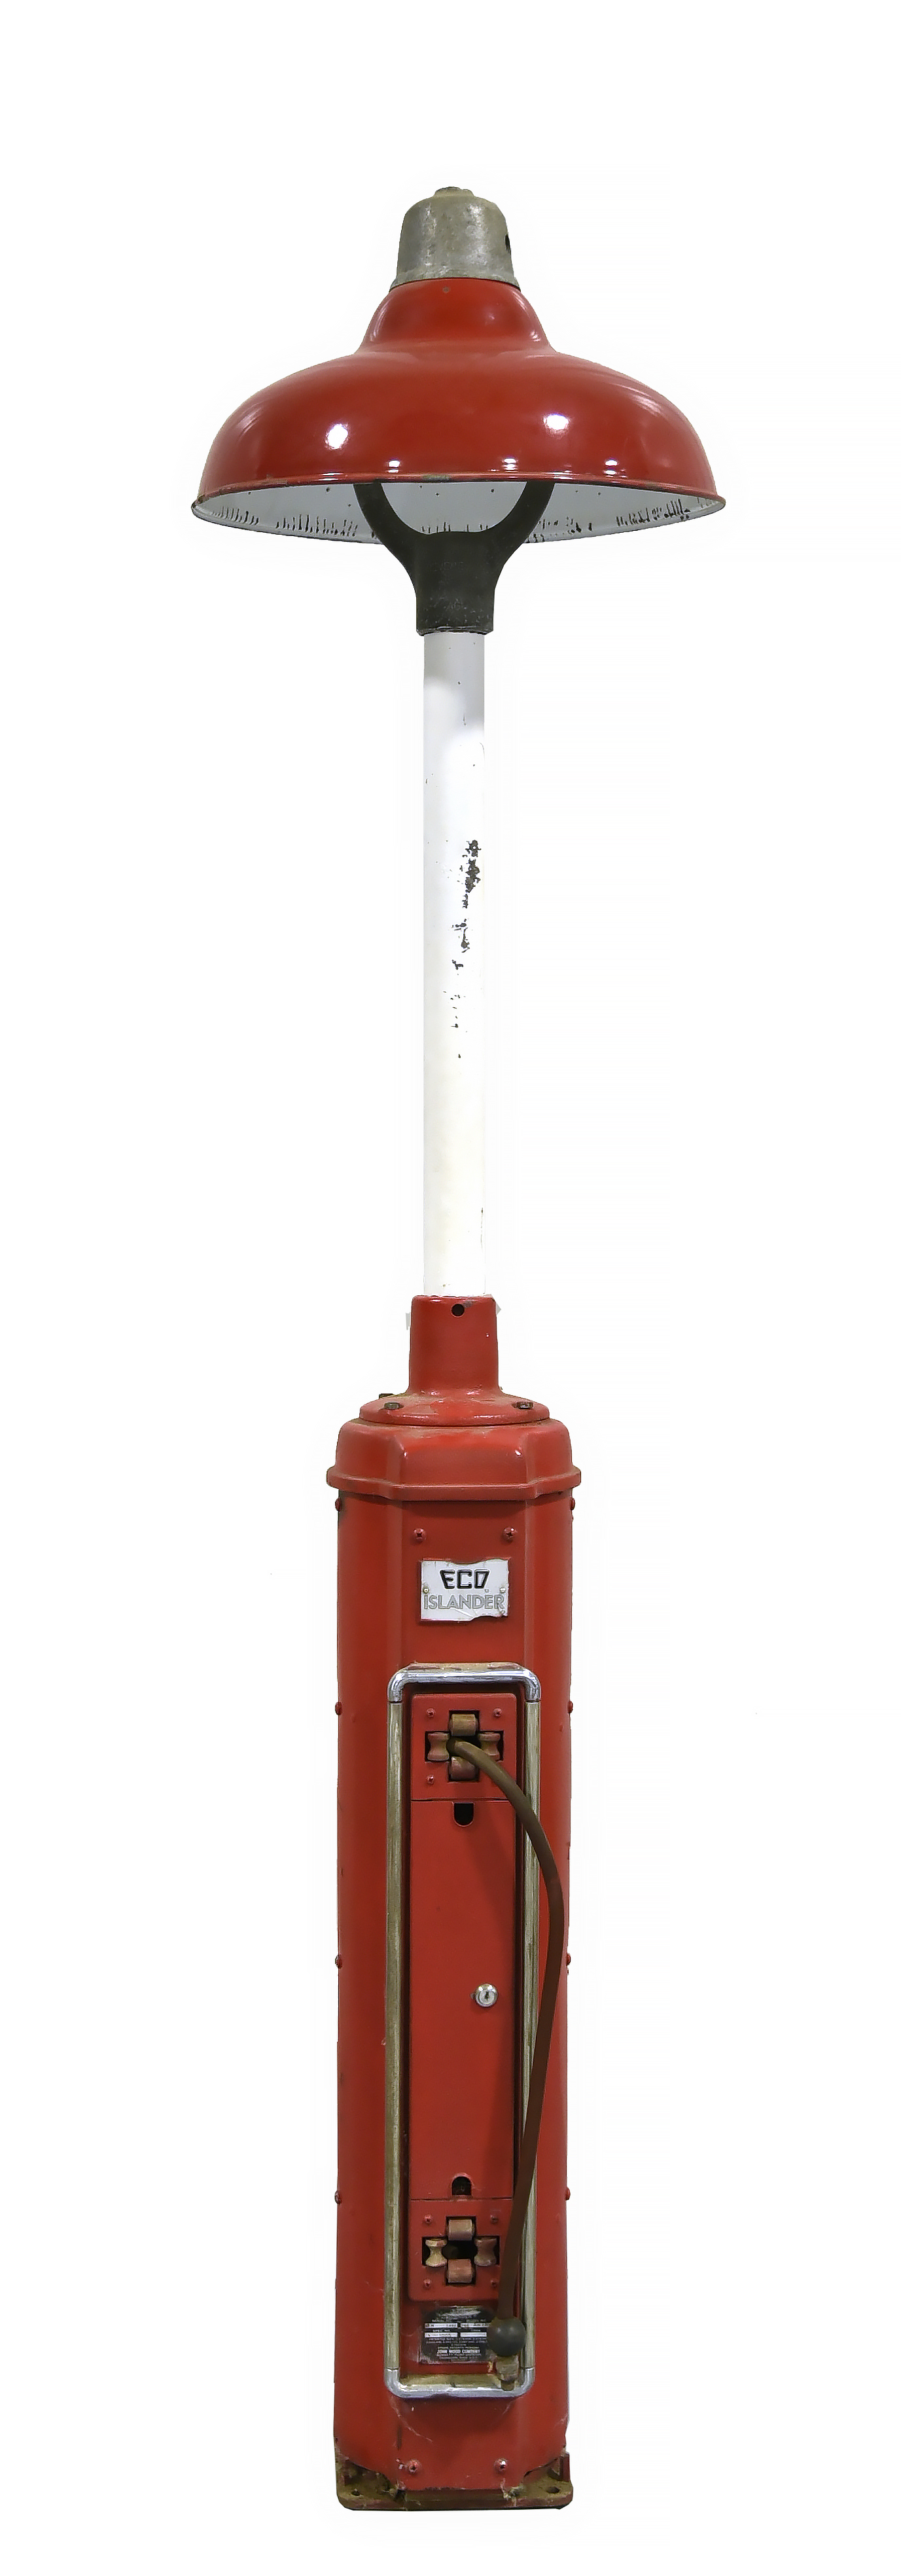 Eco Islander Gas Station Air Meter with Porcelain Light